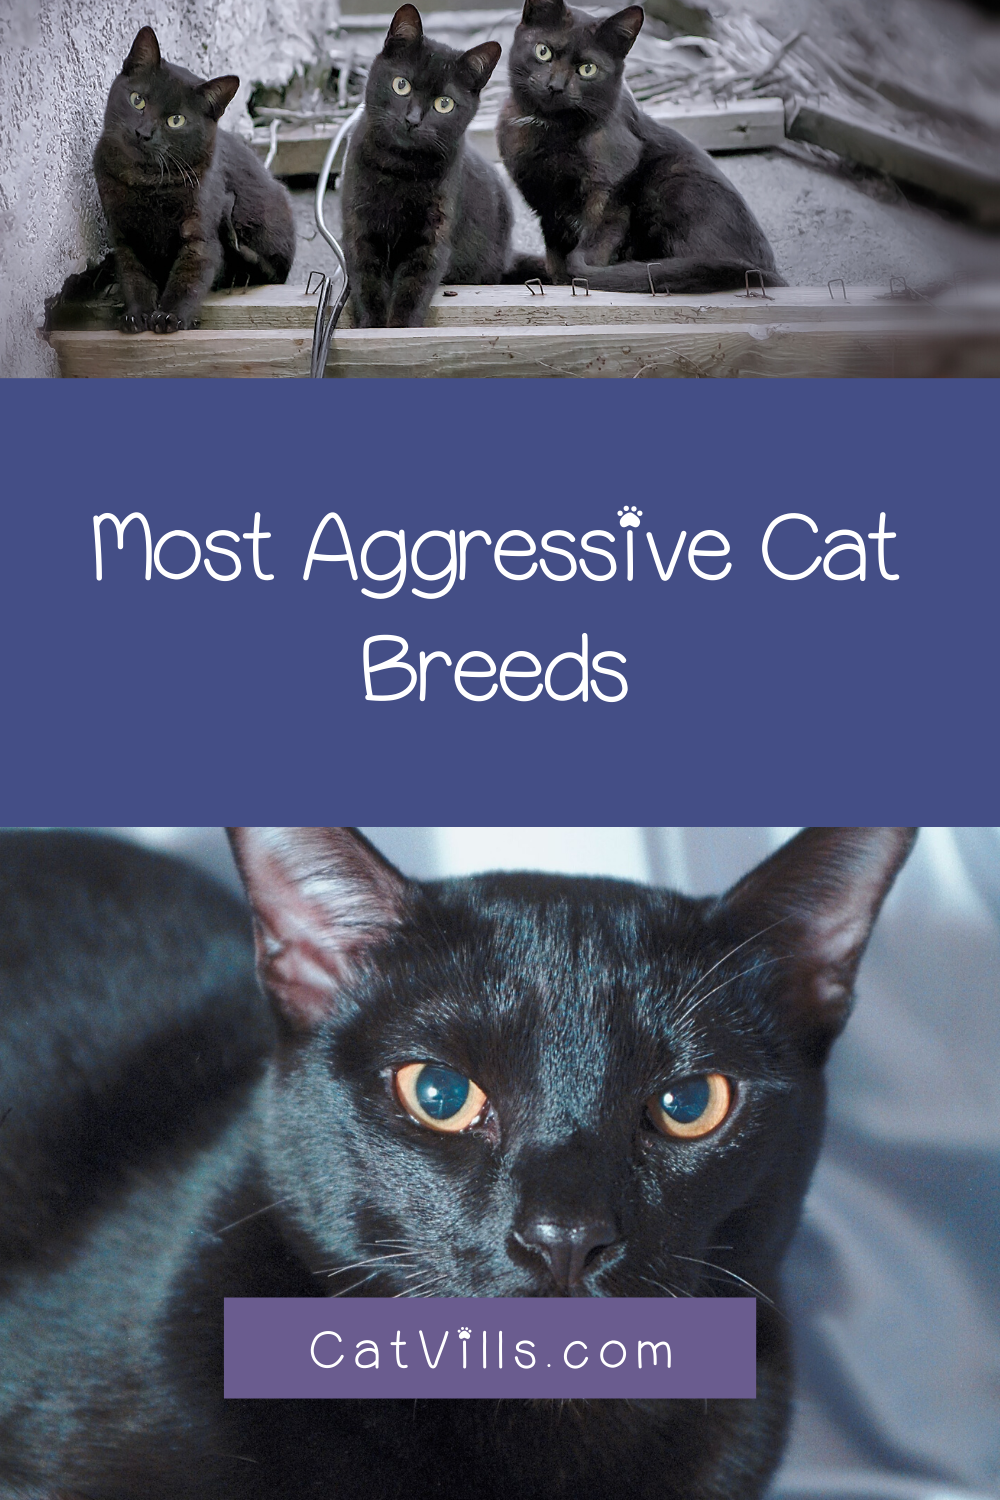 7 Most Aggressive Cat Breeds Catvills In 2020 Cat Breeds Hybrid Cat Best Cat Breeds